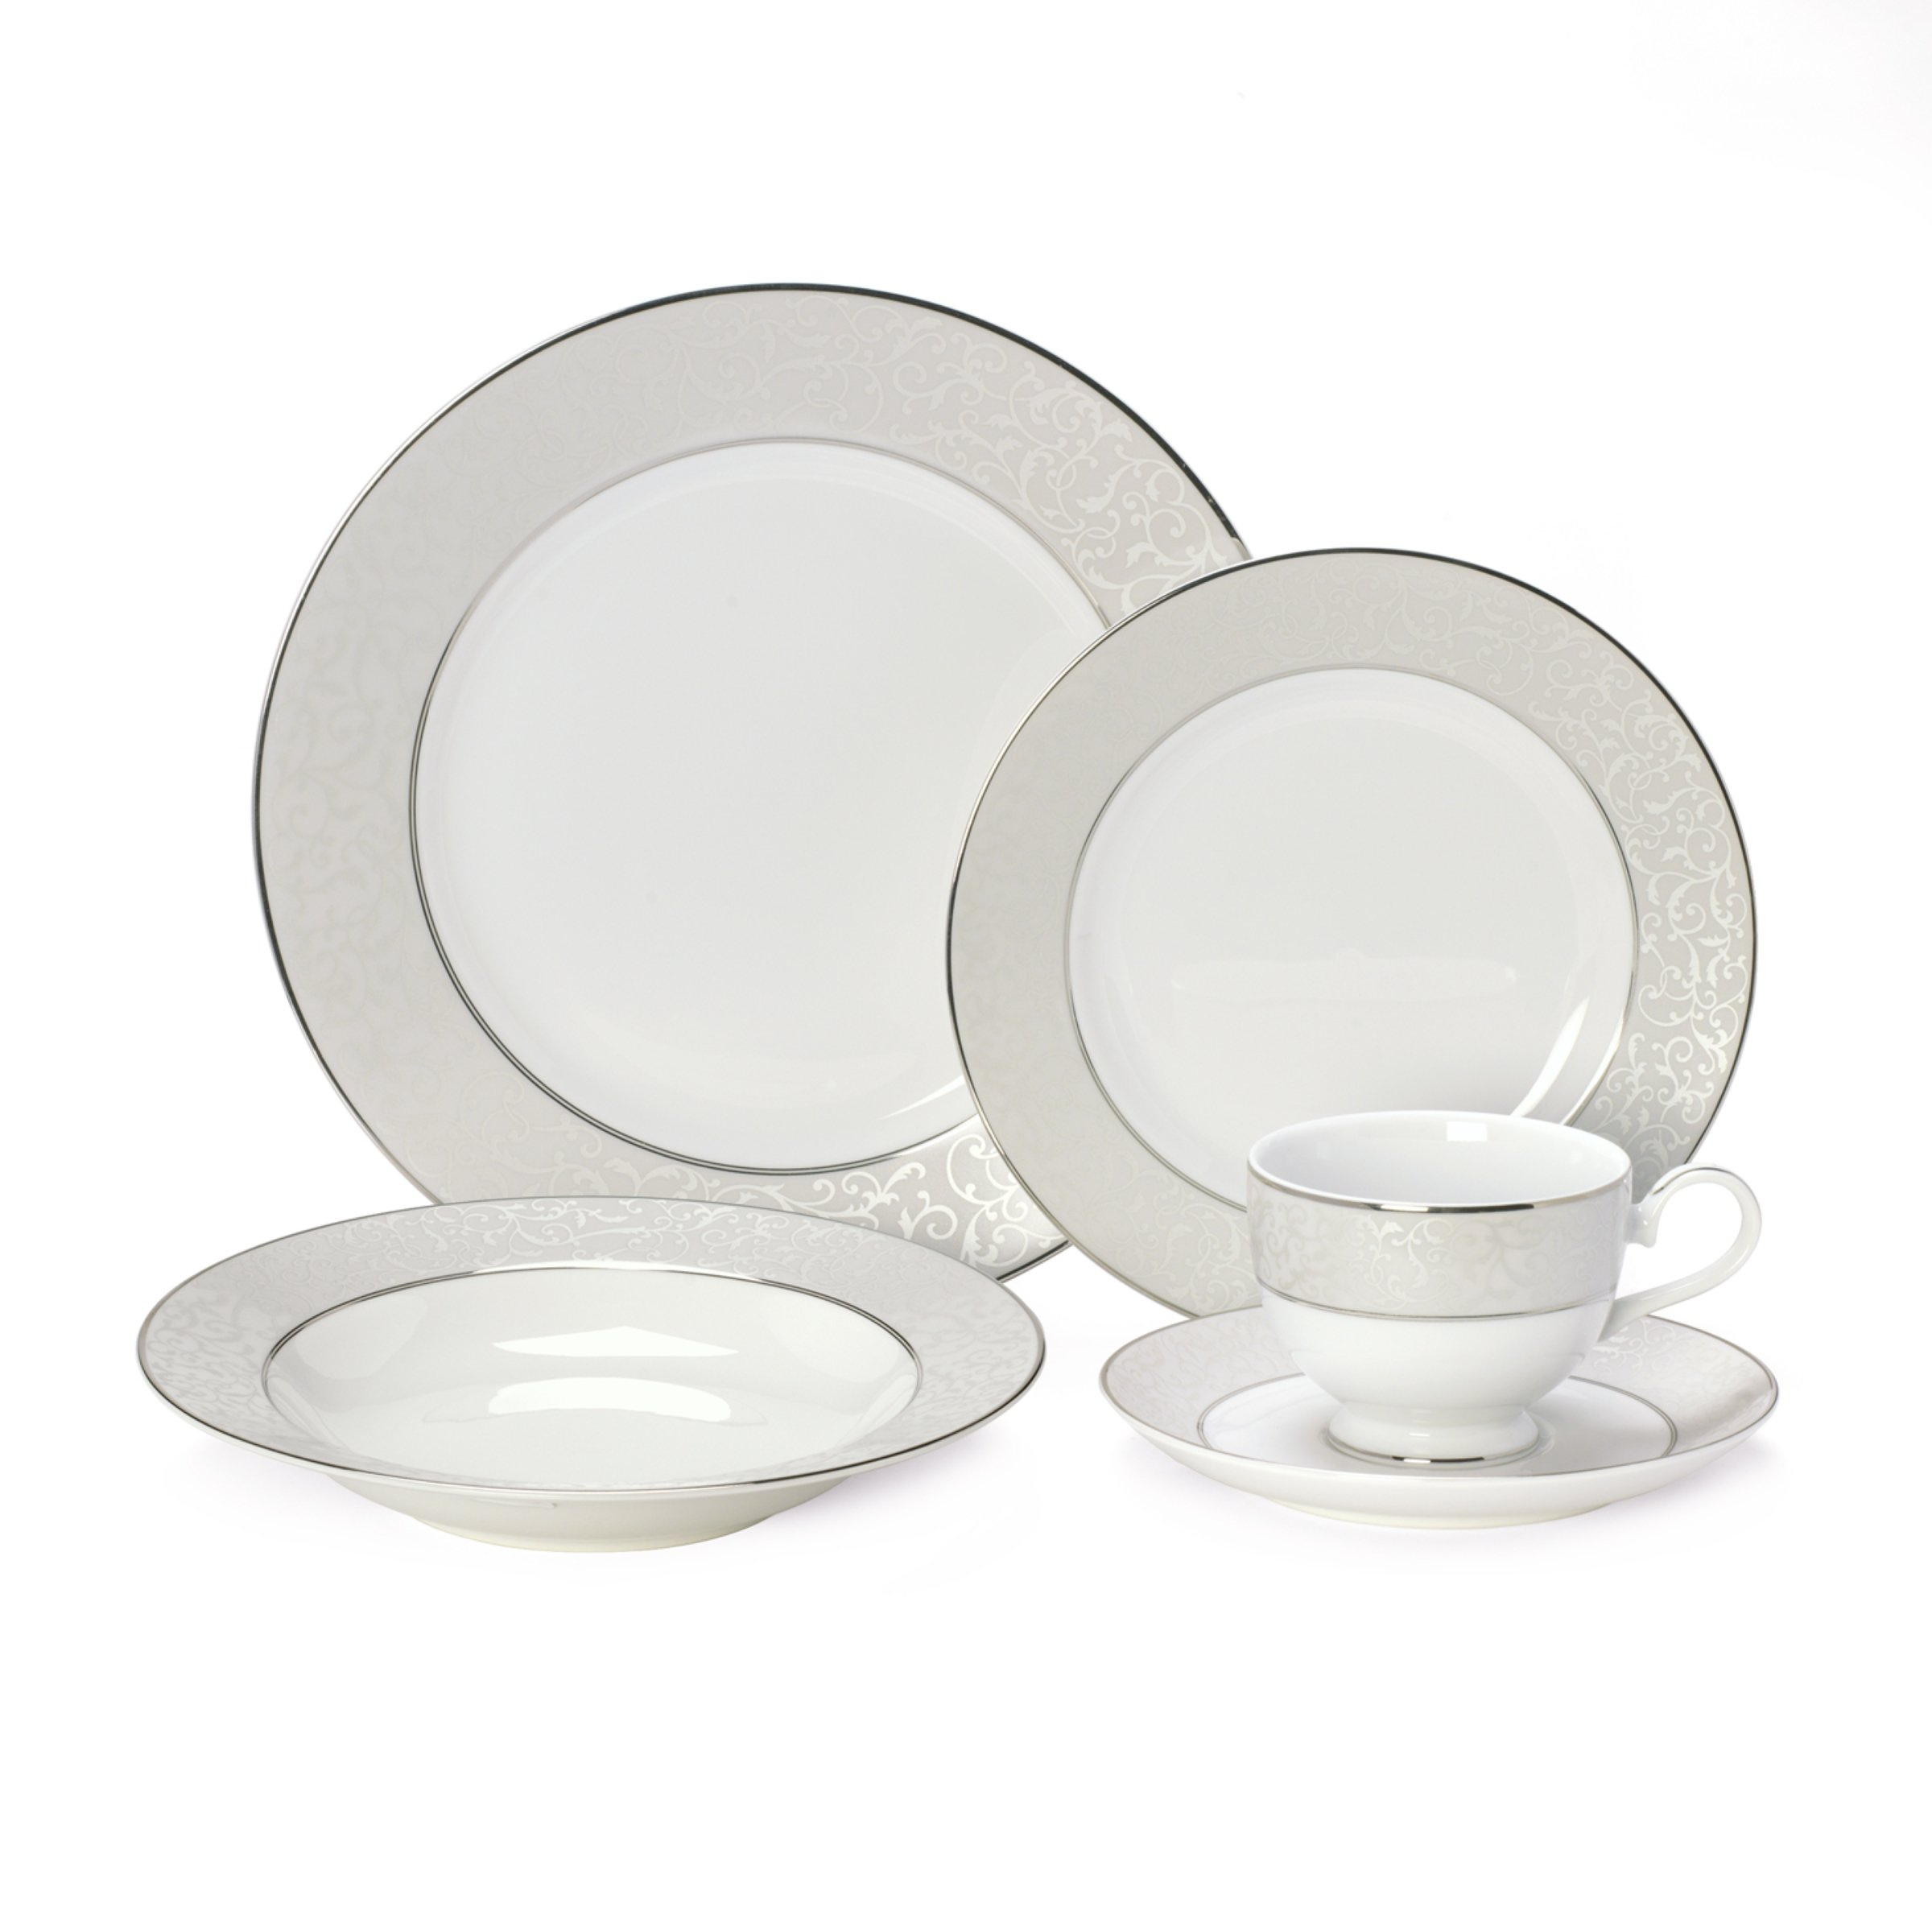 Mikasa Parchment 40-Piece Dinnerware Set, Service for 8 by Mikasa